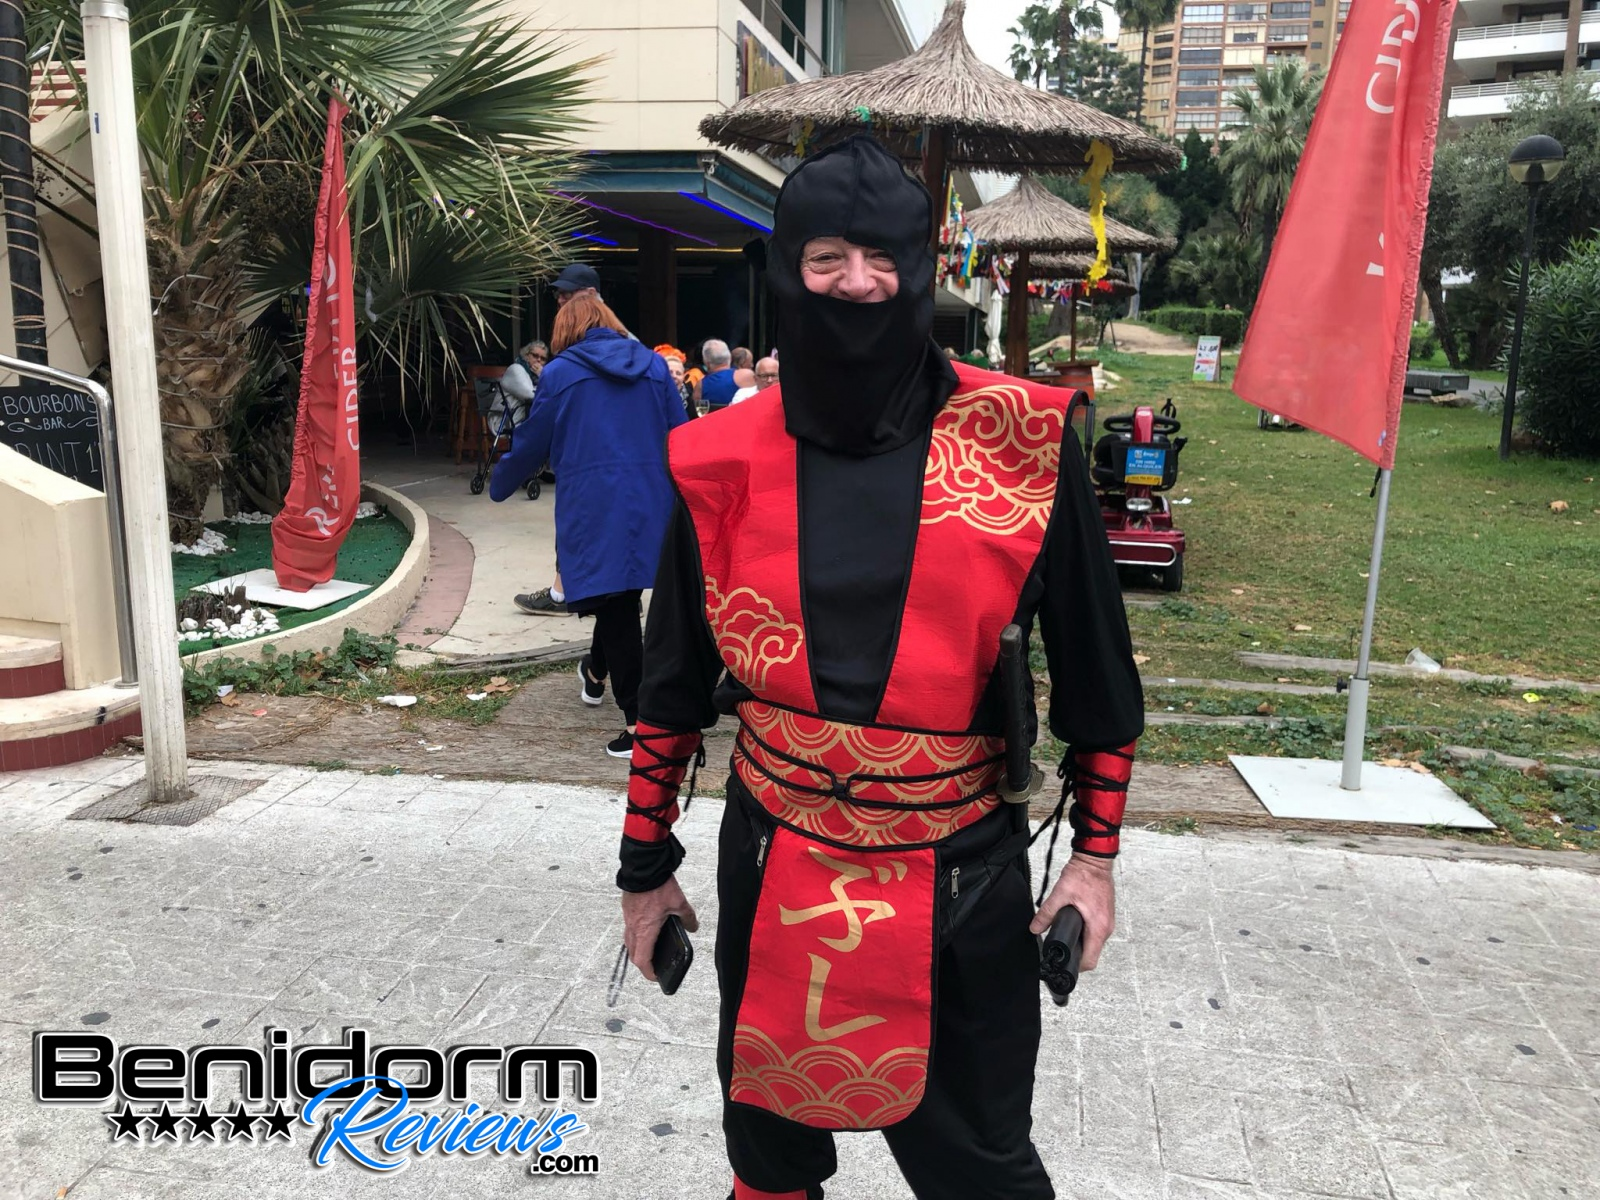 Benidorm-Fiestas-2019-Fancy-Dress-97